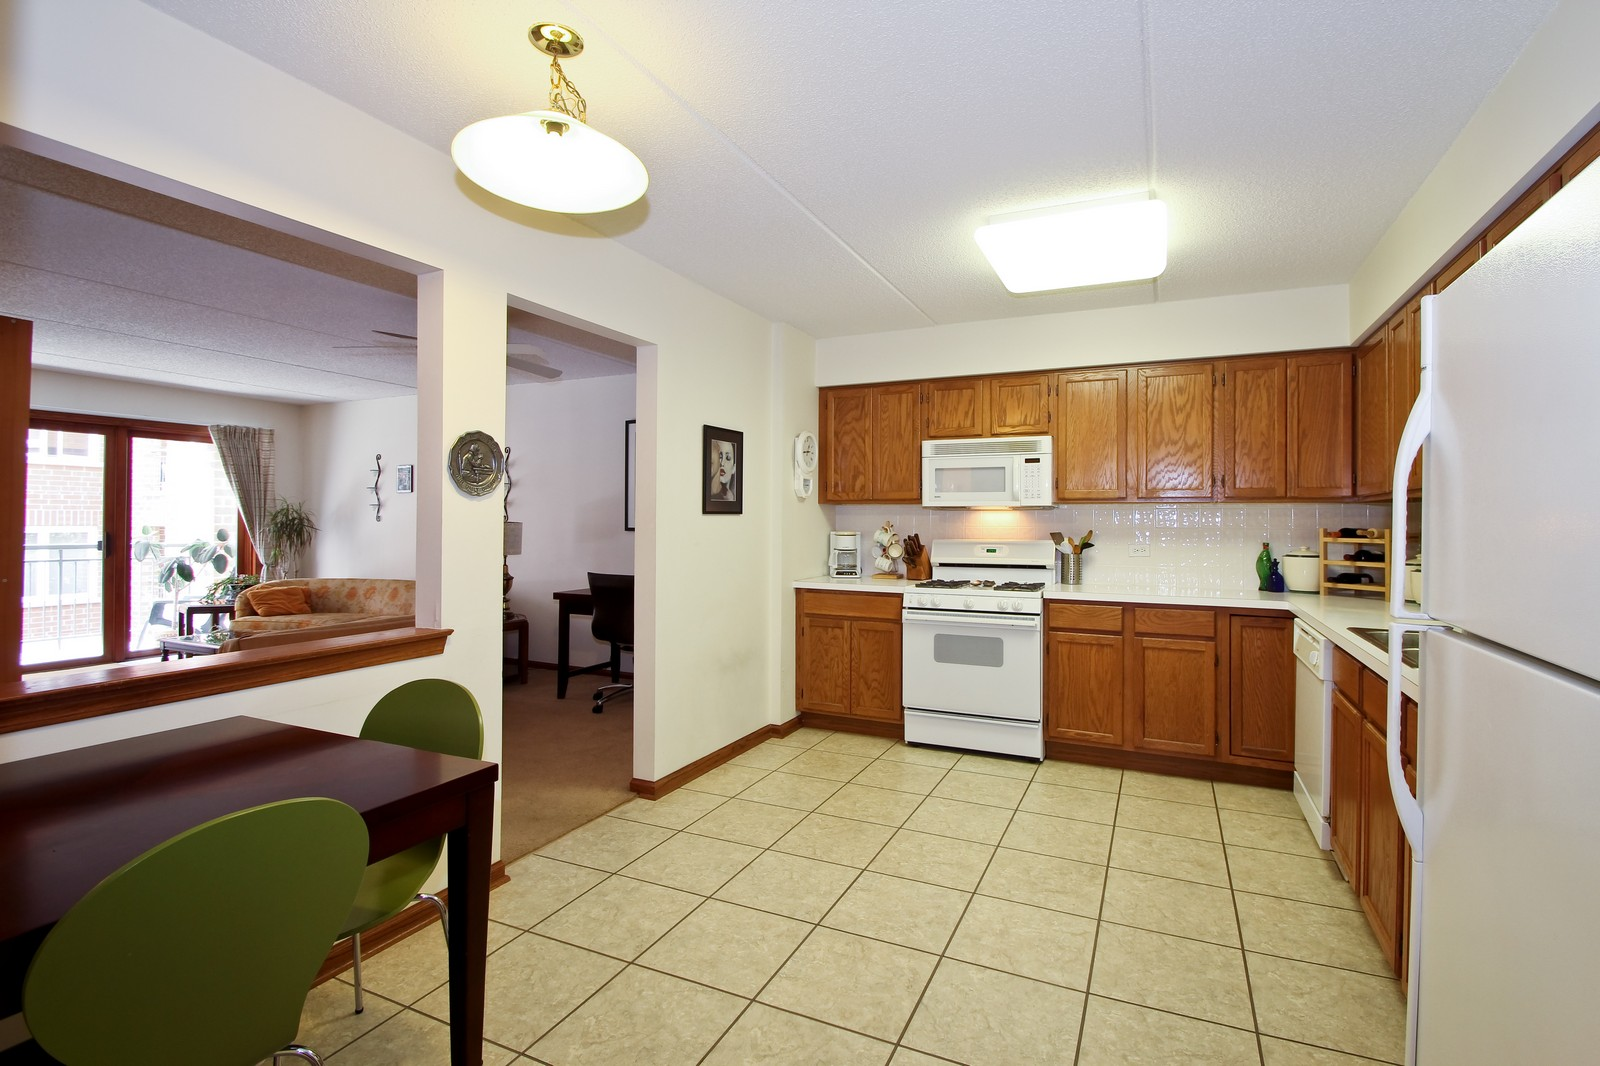 Real Estate Photography - 5340 N Lowell Ave, Unit 206, Chicago, IL, 60630 - Kitchen / Living Room